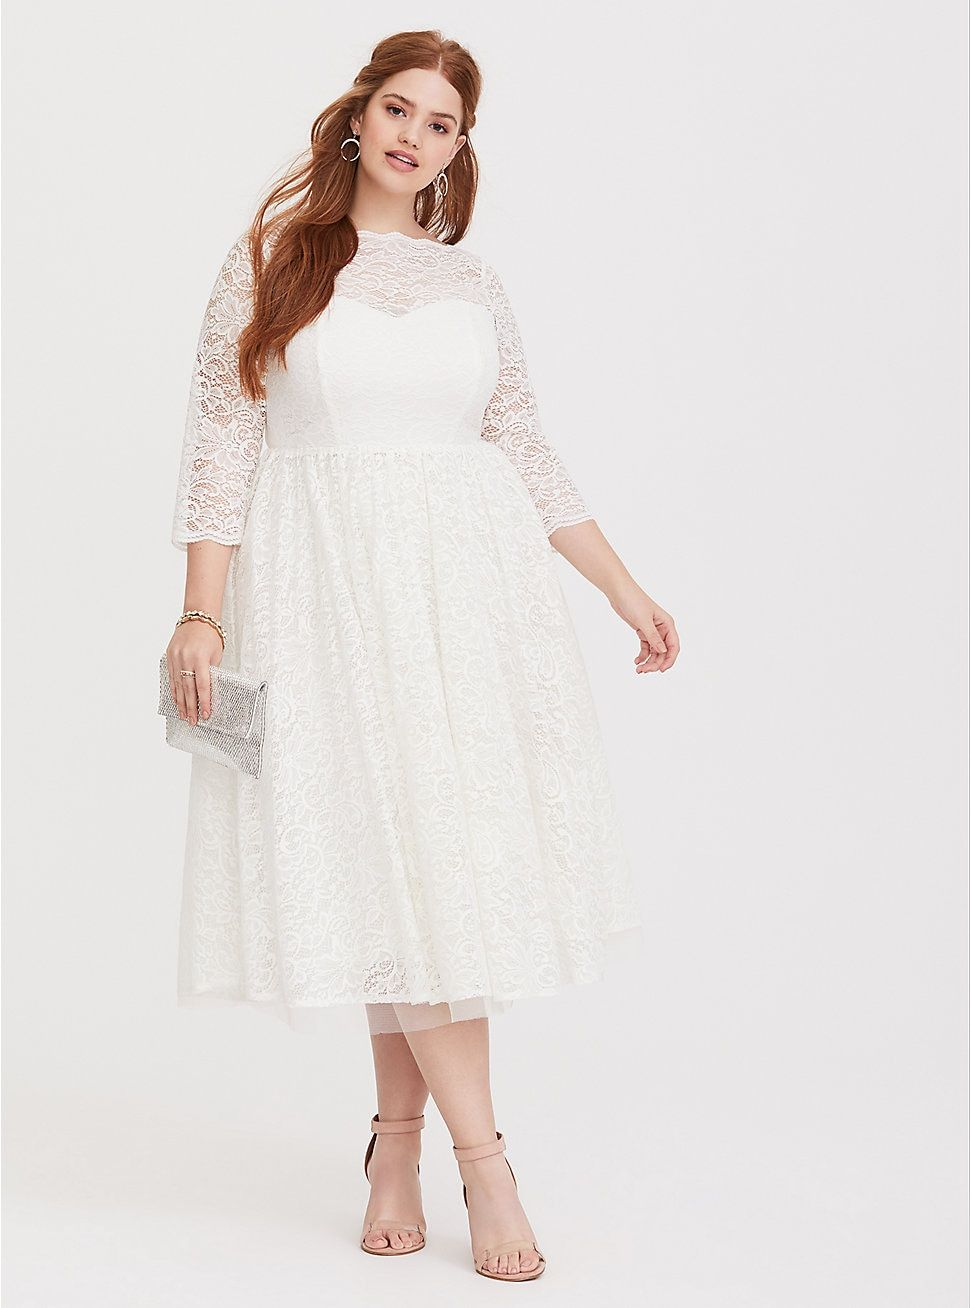 ab9540239f5 Plus Size Special Occasion White Lace Midi Dress